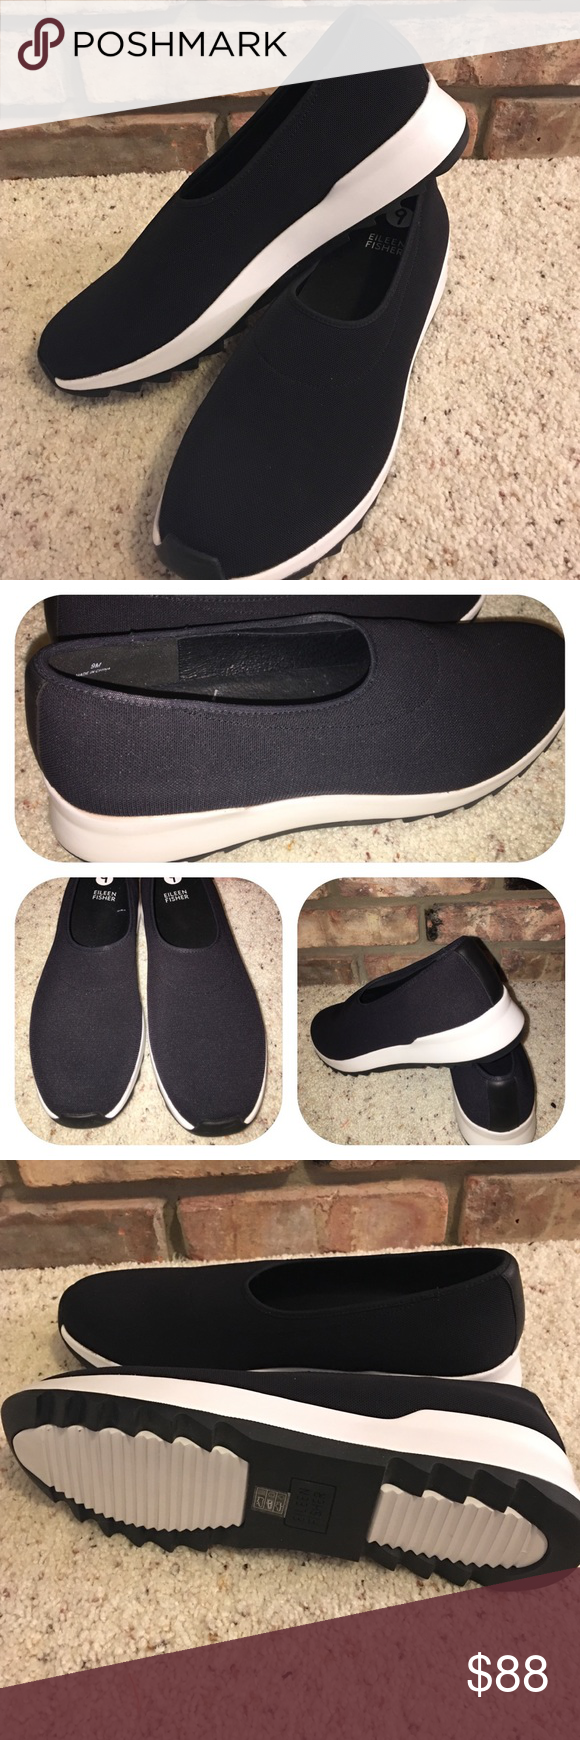 Eileen Fisher New Black Mesh Flex Slip on Loafer 9 New without box. Nice comfortable black mesh slip on flats with rubber sole. With non-slip grip bottoms. Eileen Fisher Shoes Flats & Loafers